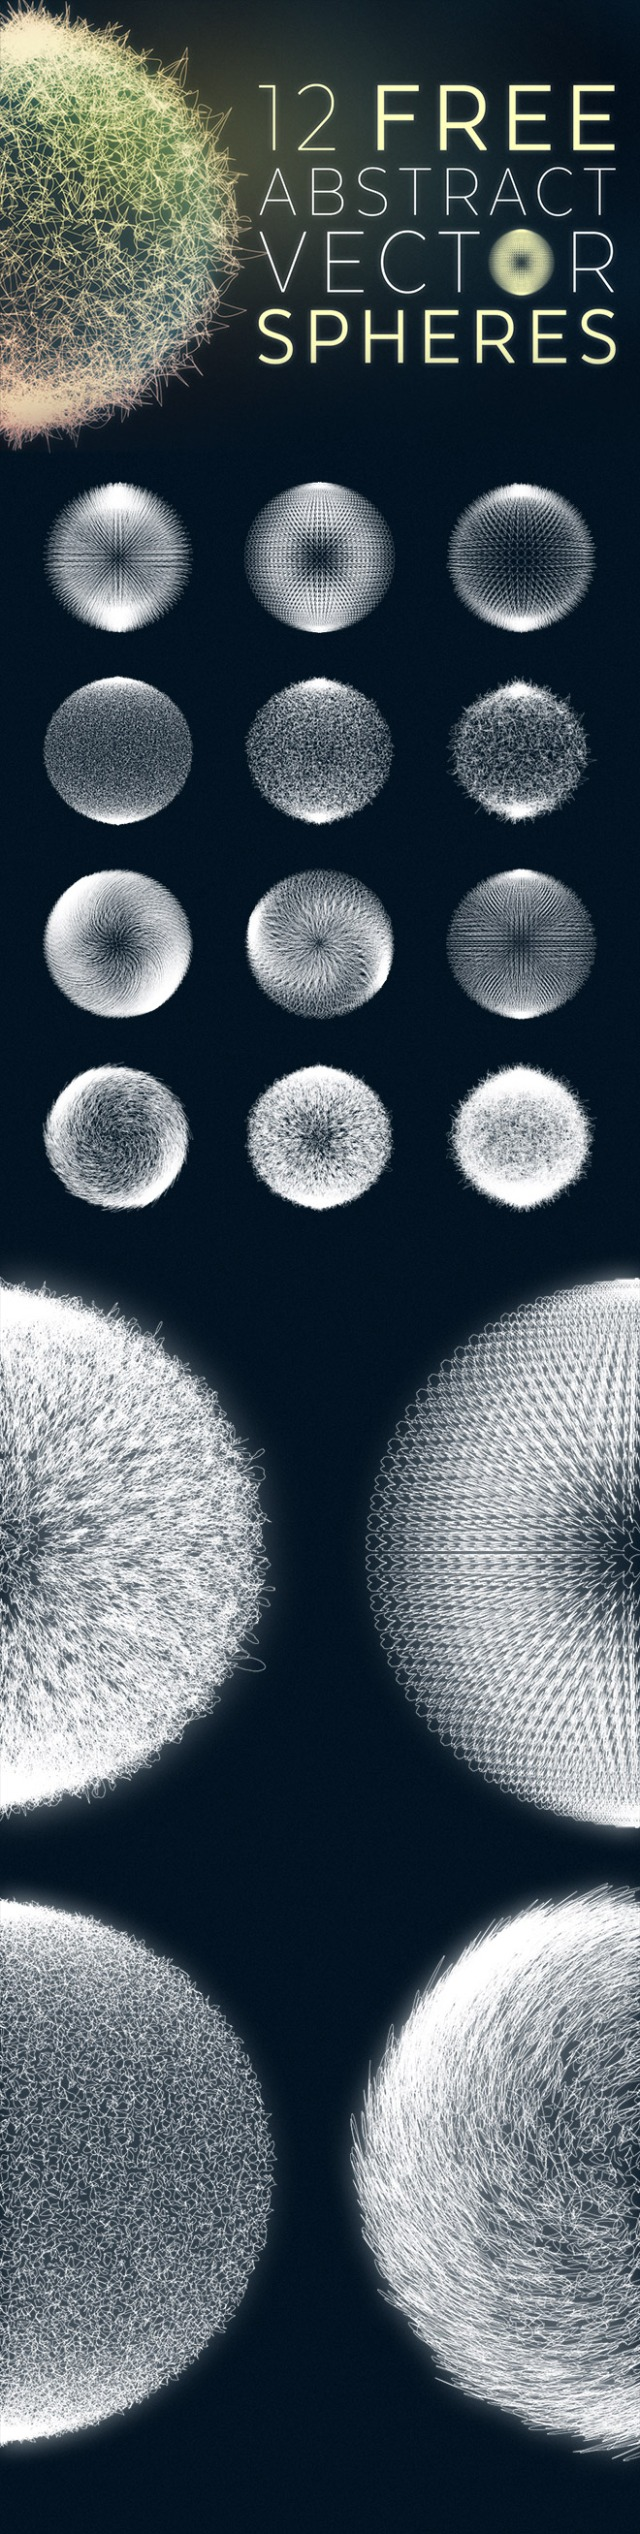 12-free-abstract-vector-spheres